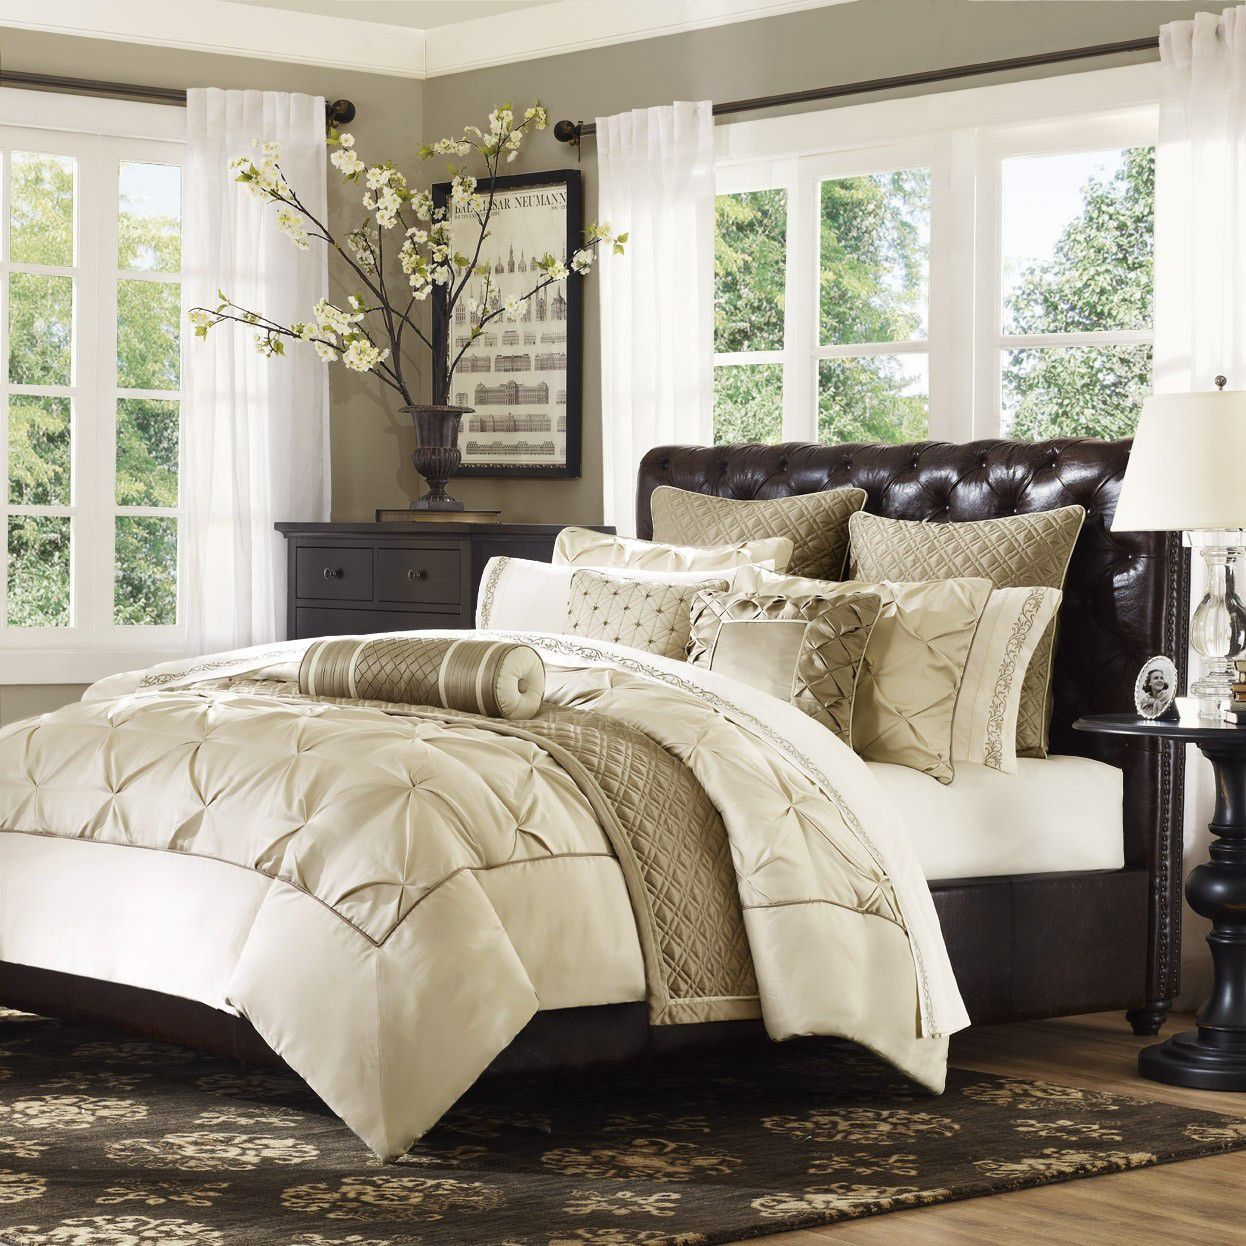 x creativemindspromo amazing estate beautiful king comforter sets ivory com set design